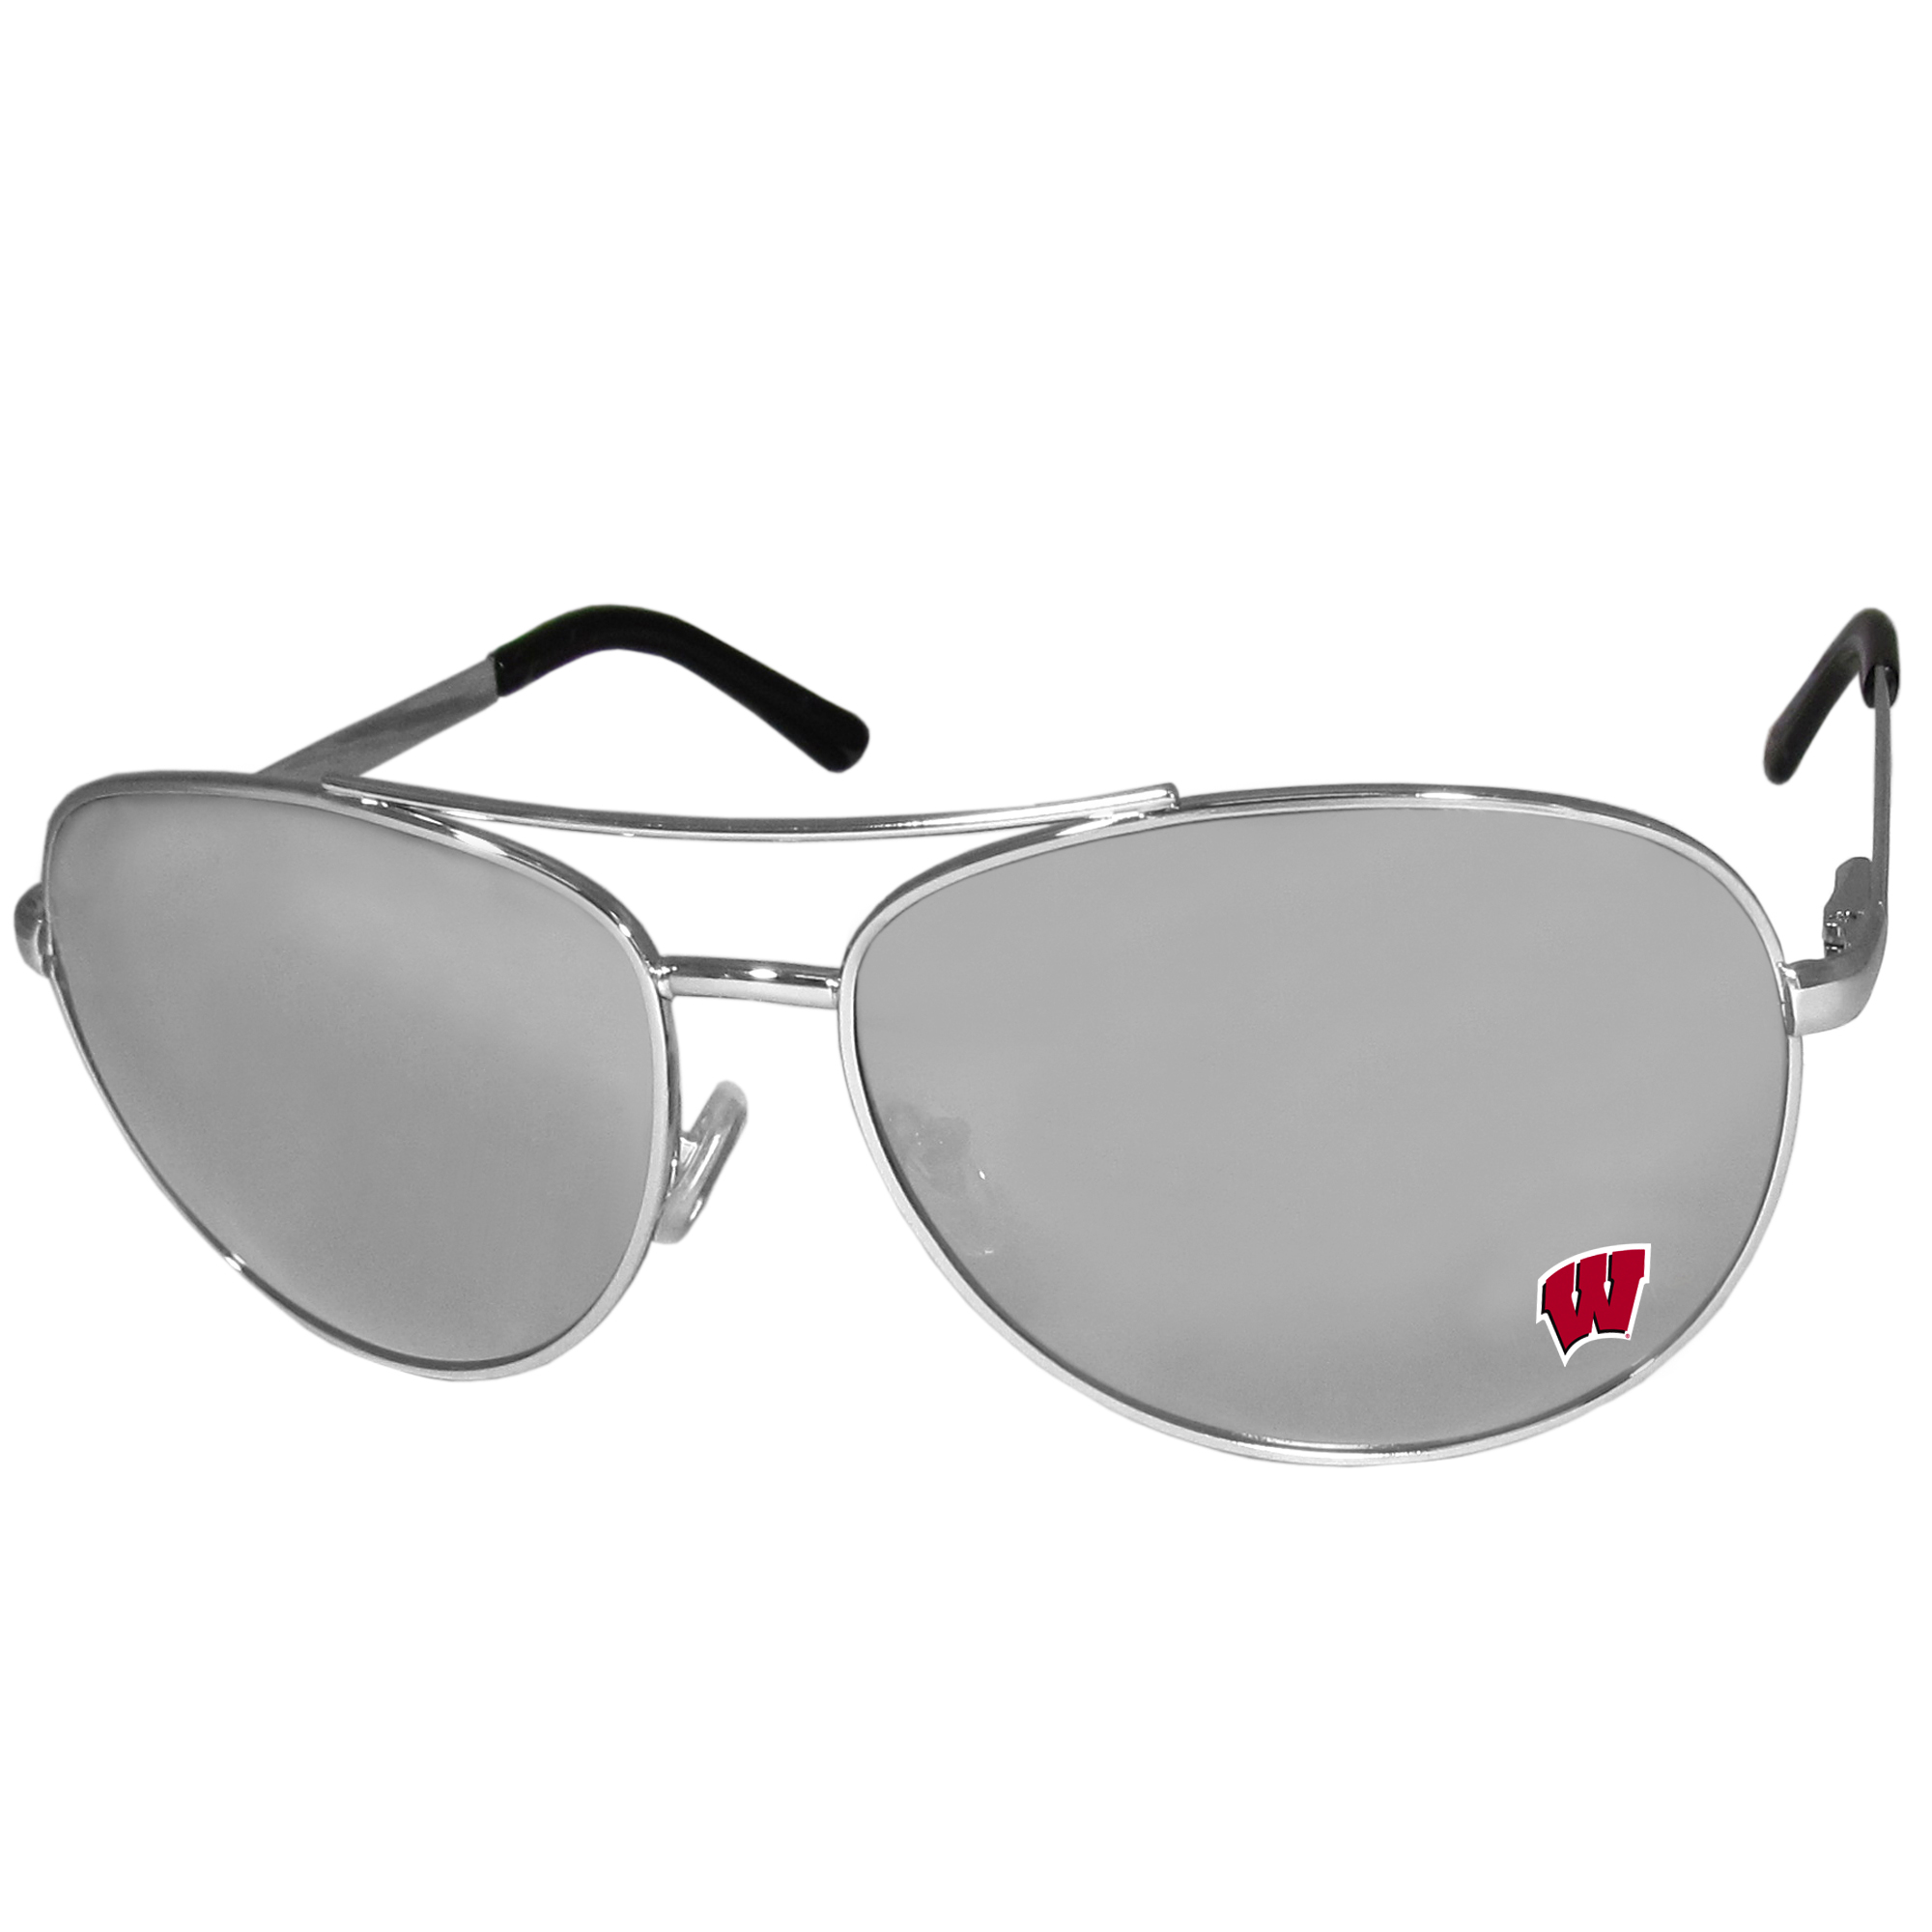 Wisconsin Badgers Aviator Sunglasses - Our aviator sunglasses have the iconic aviator style with mirrored lenses and metal frames. The glasses feature a silk screened Wisconsin Badgers logo in the corner of the lense. 100% UVA/UVB protection.